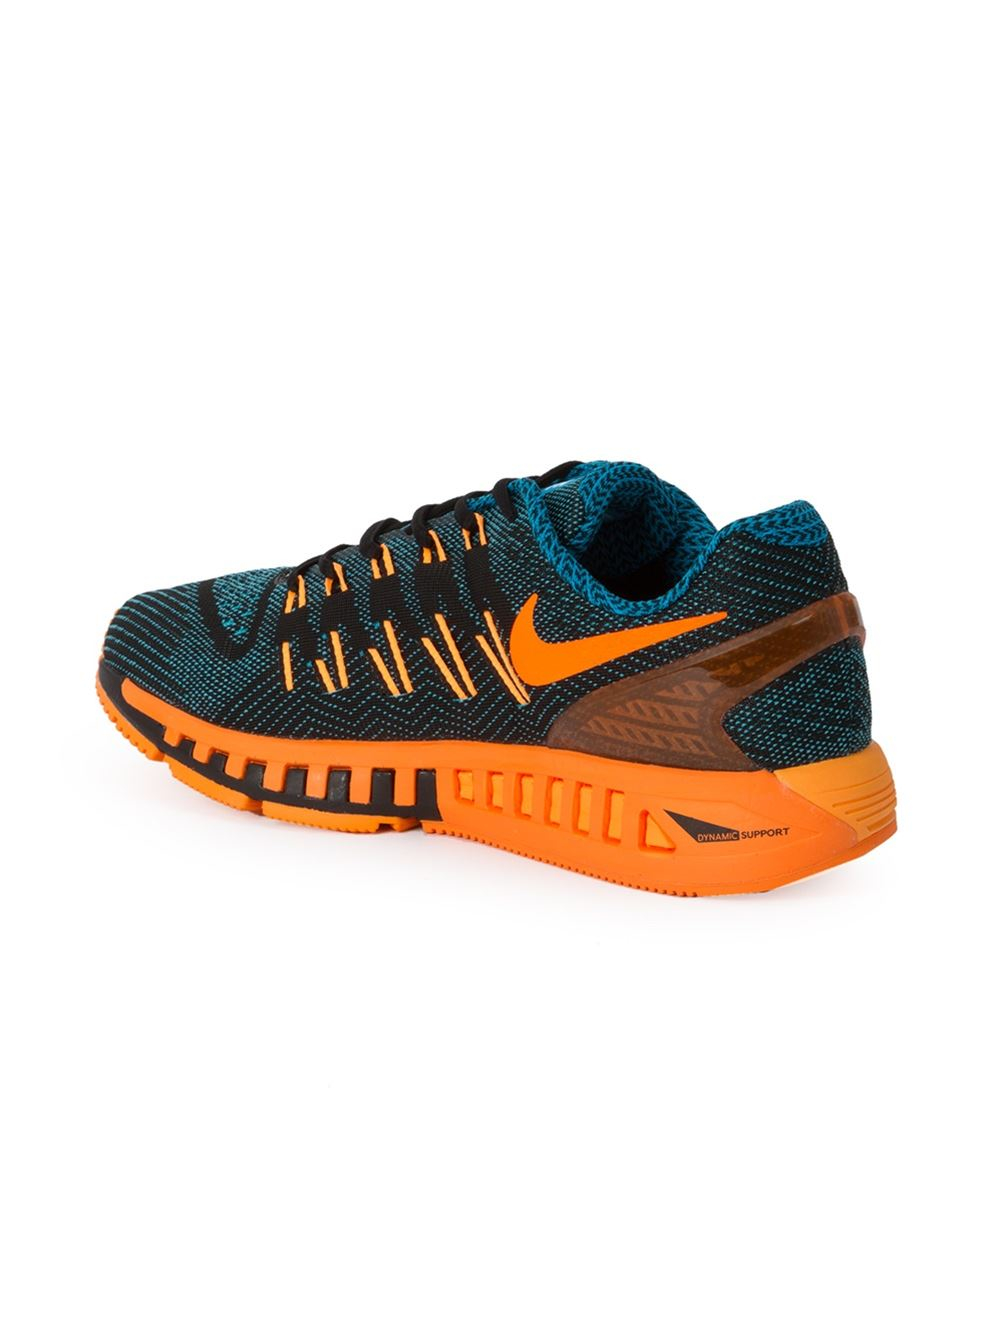 Lyst - Nike Air Zoom Odyssey Sneakers in Blue for Men 3bf241118870